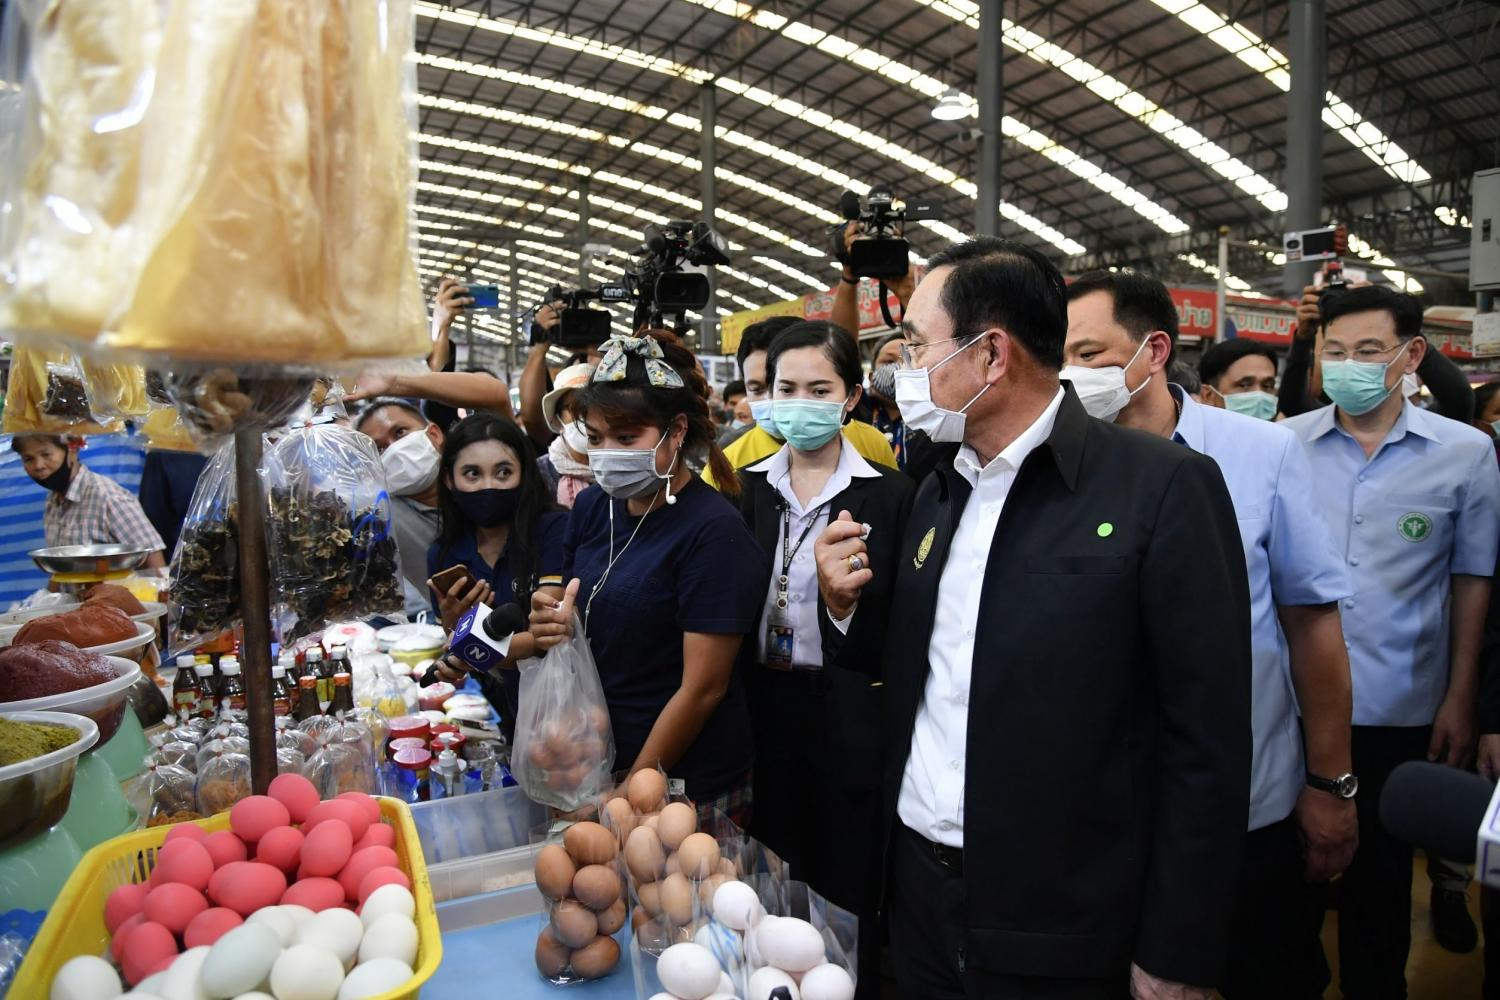 Prime Minister Prayut Chan-o-cha, accompanied by Public Health Minister Anutin Charnvirakul and his deputy Sathit Pitutecha, chats with vendors at the Star Market in downtown Rayong.(Government House photo)